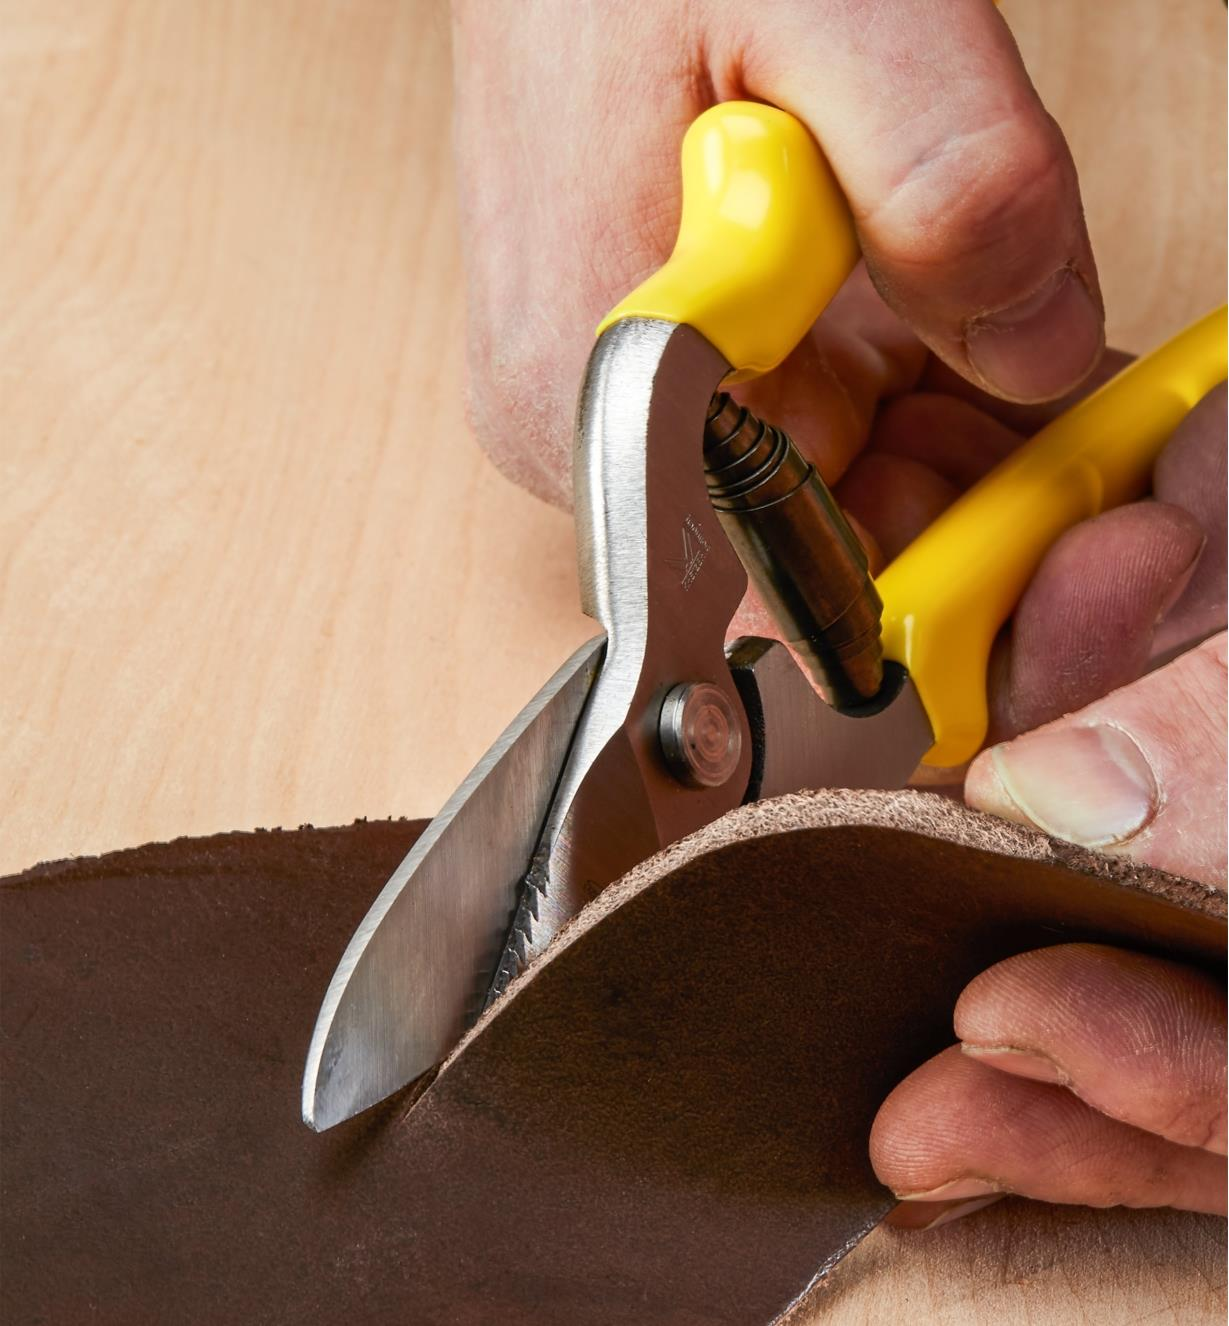 Cutting thick leather with Leather Shears